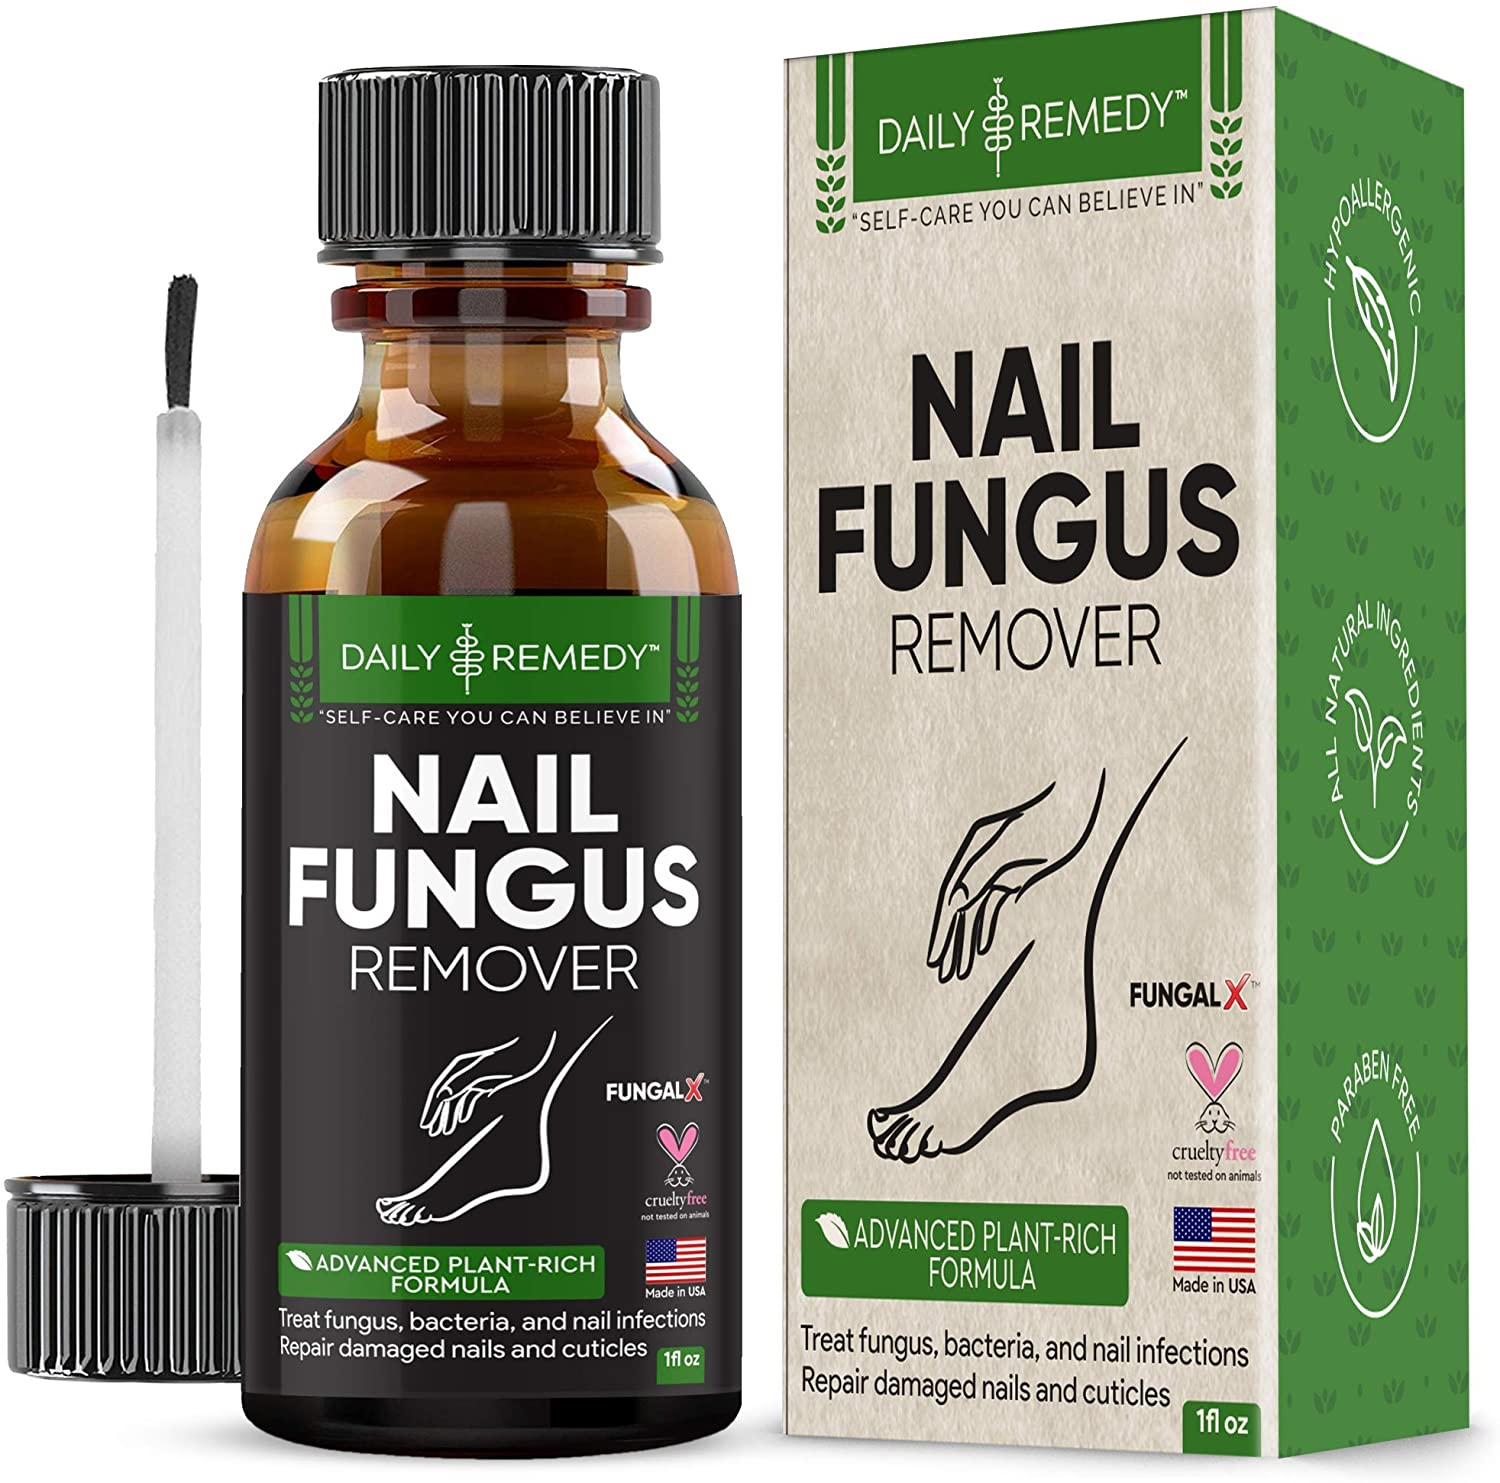 Daily Remedy Anti-Fungus Nail Treatment